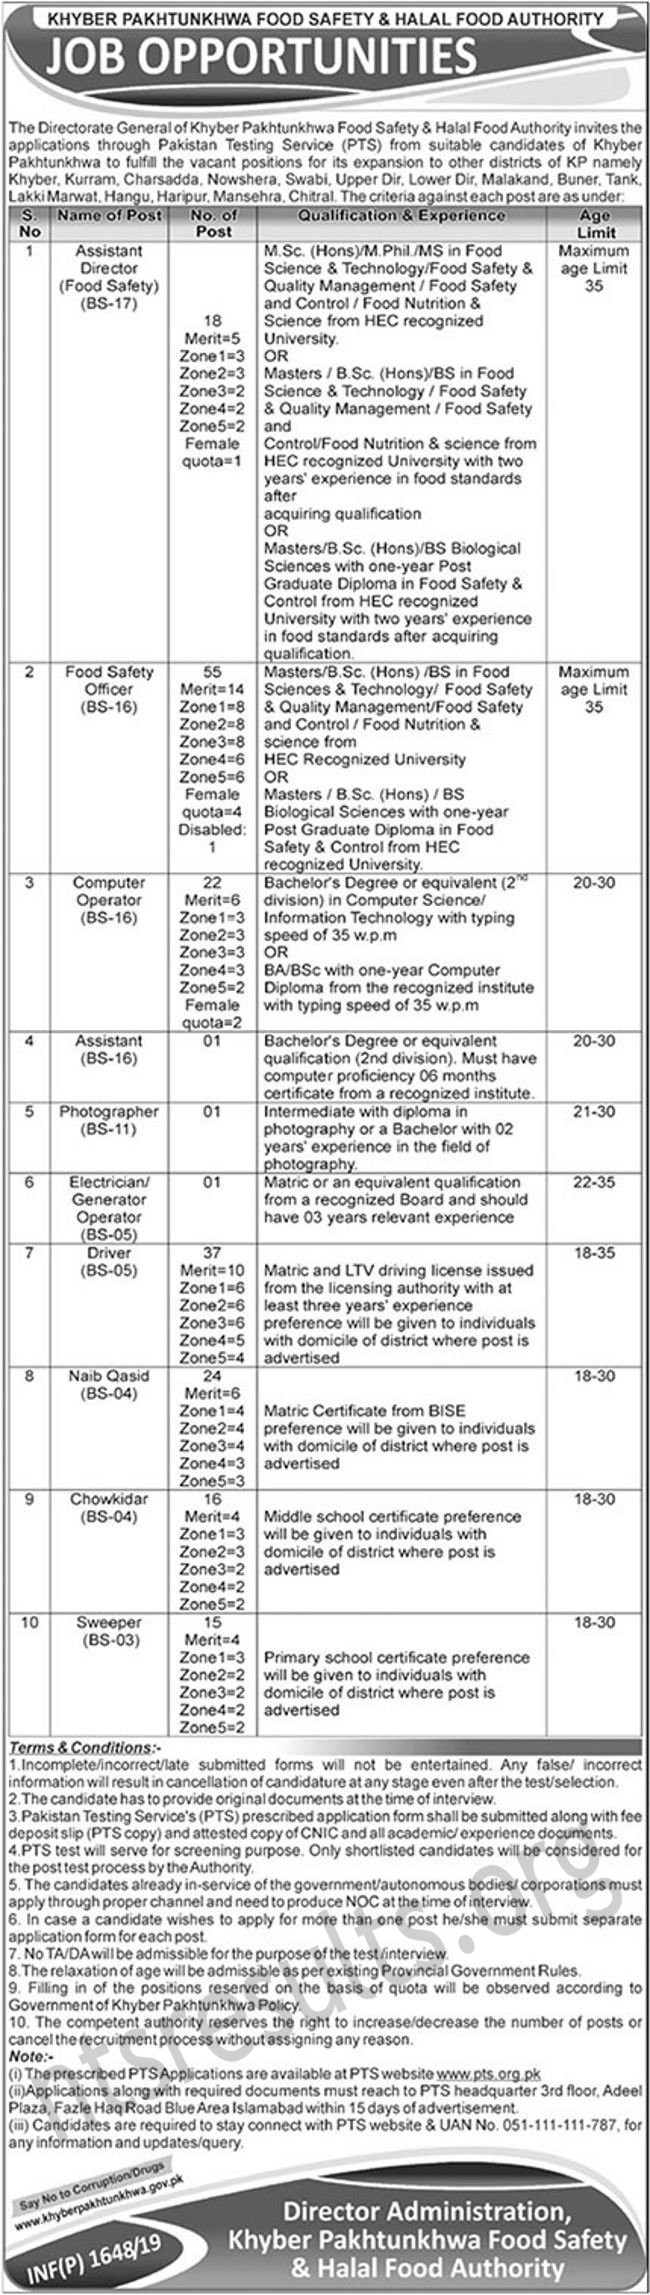 KPK Food Safety Halal Food Authority Jobs Via PTS